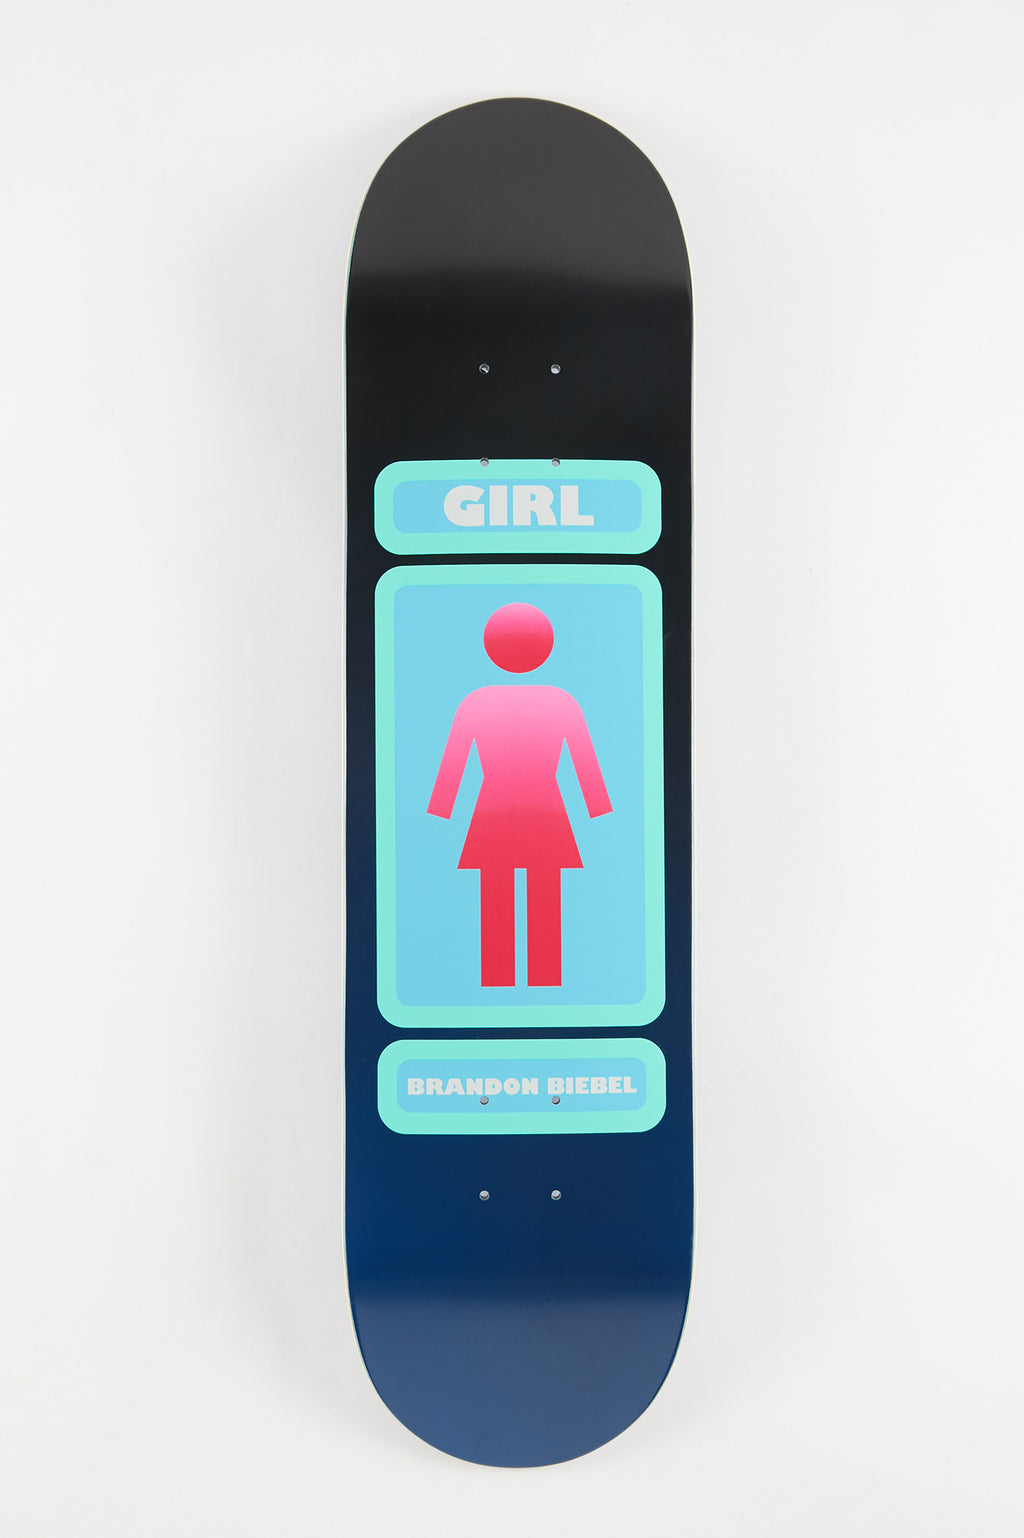 "Girl Brandon Biebel 93 Til 8"" Skateboard Deck"